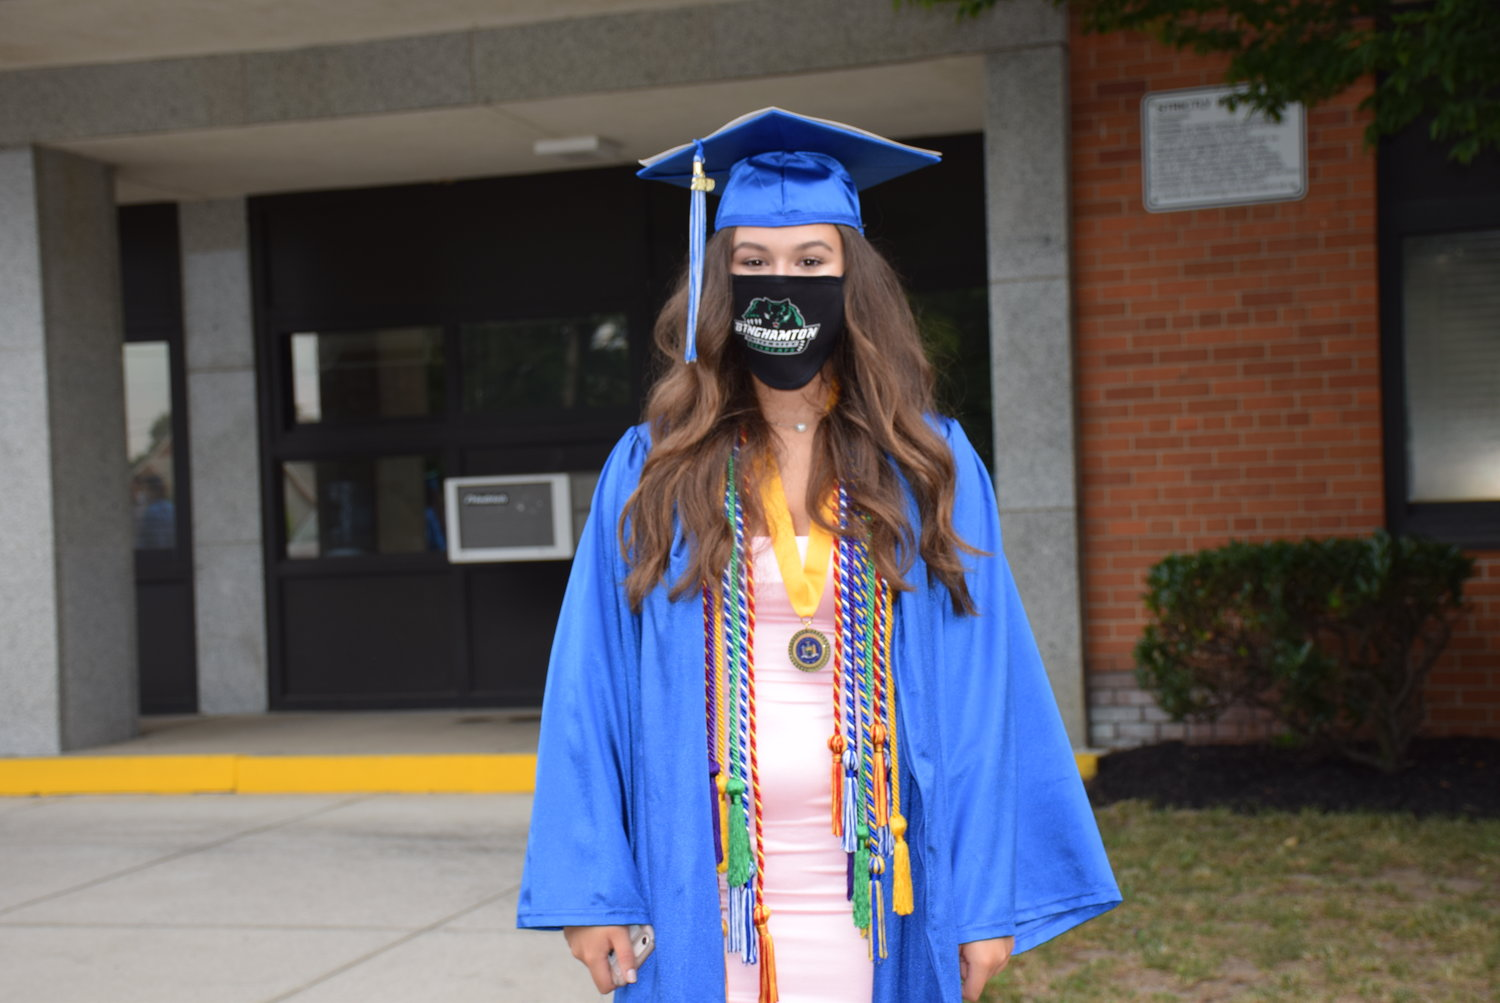 Denise Campanelli used her mask to indicate where she was going to college in the fall: Binghamton University.